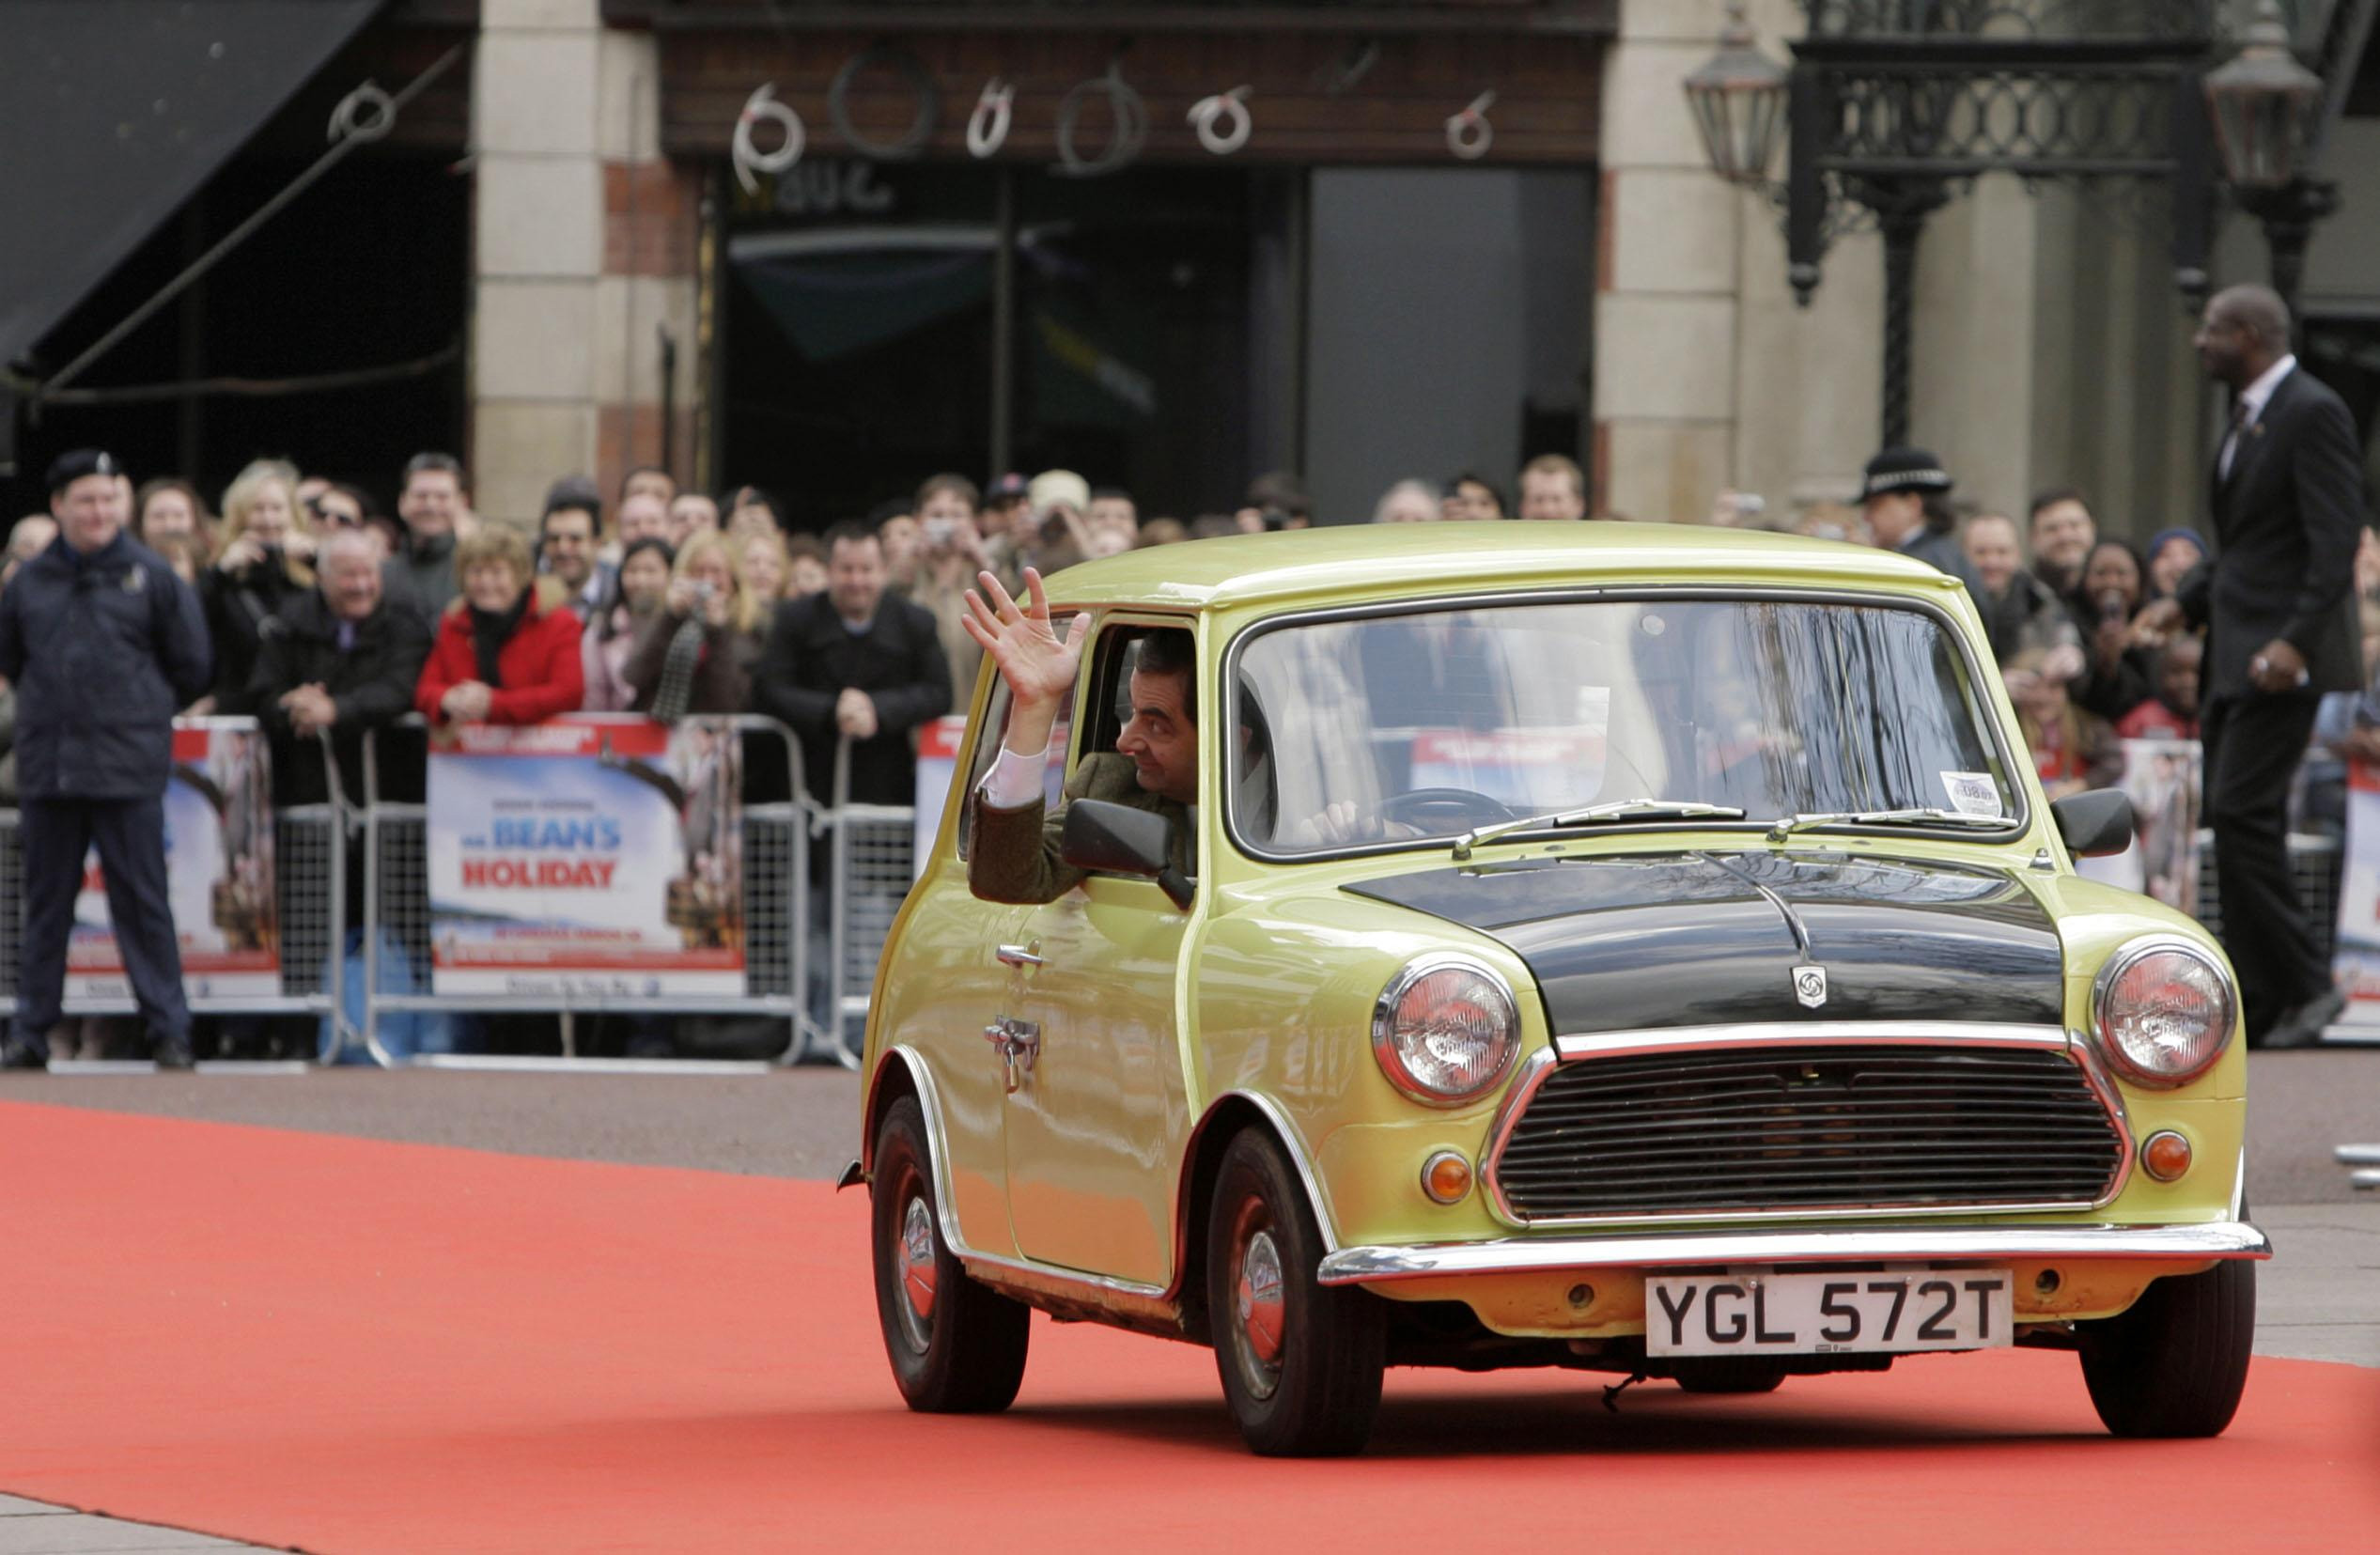 Rowan Atkinson arrives at the Mr Bean premiere in a Mini